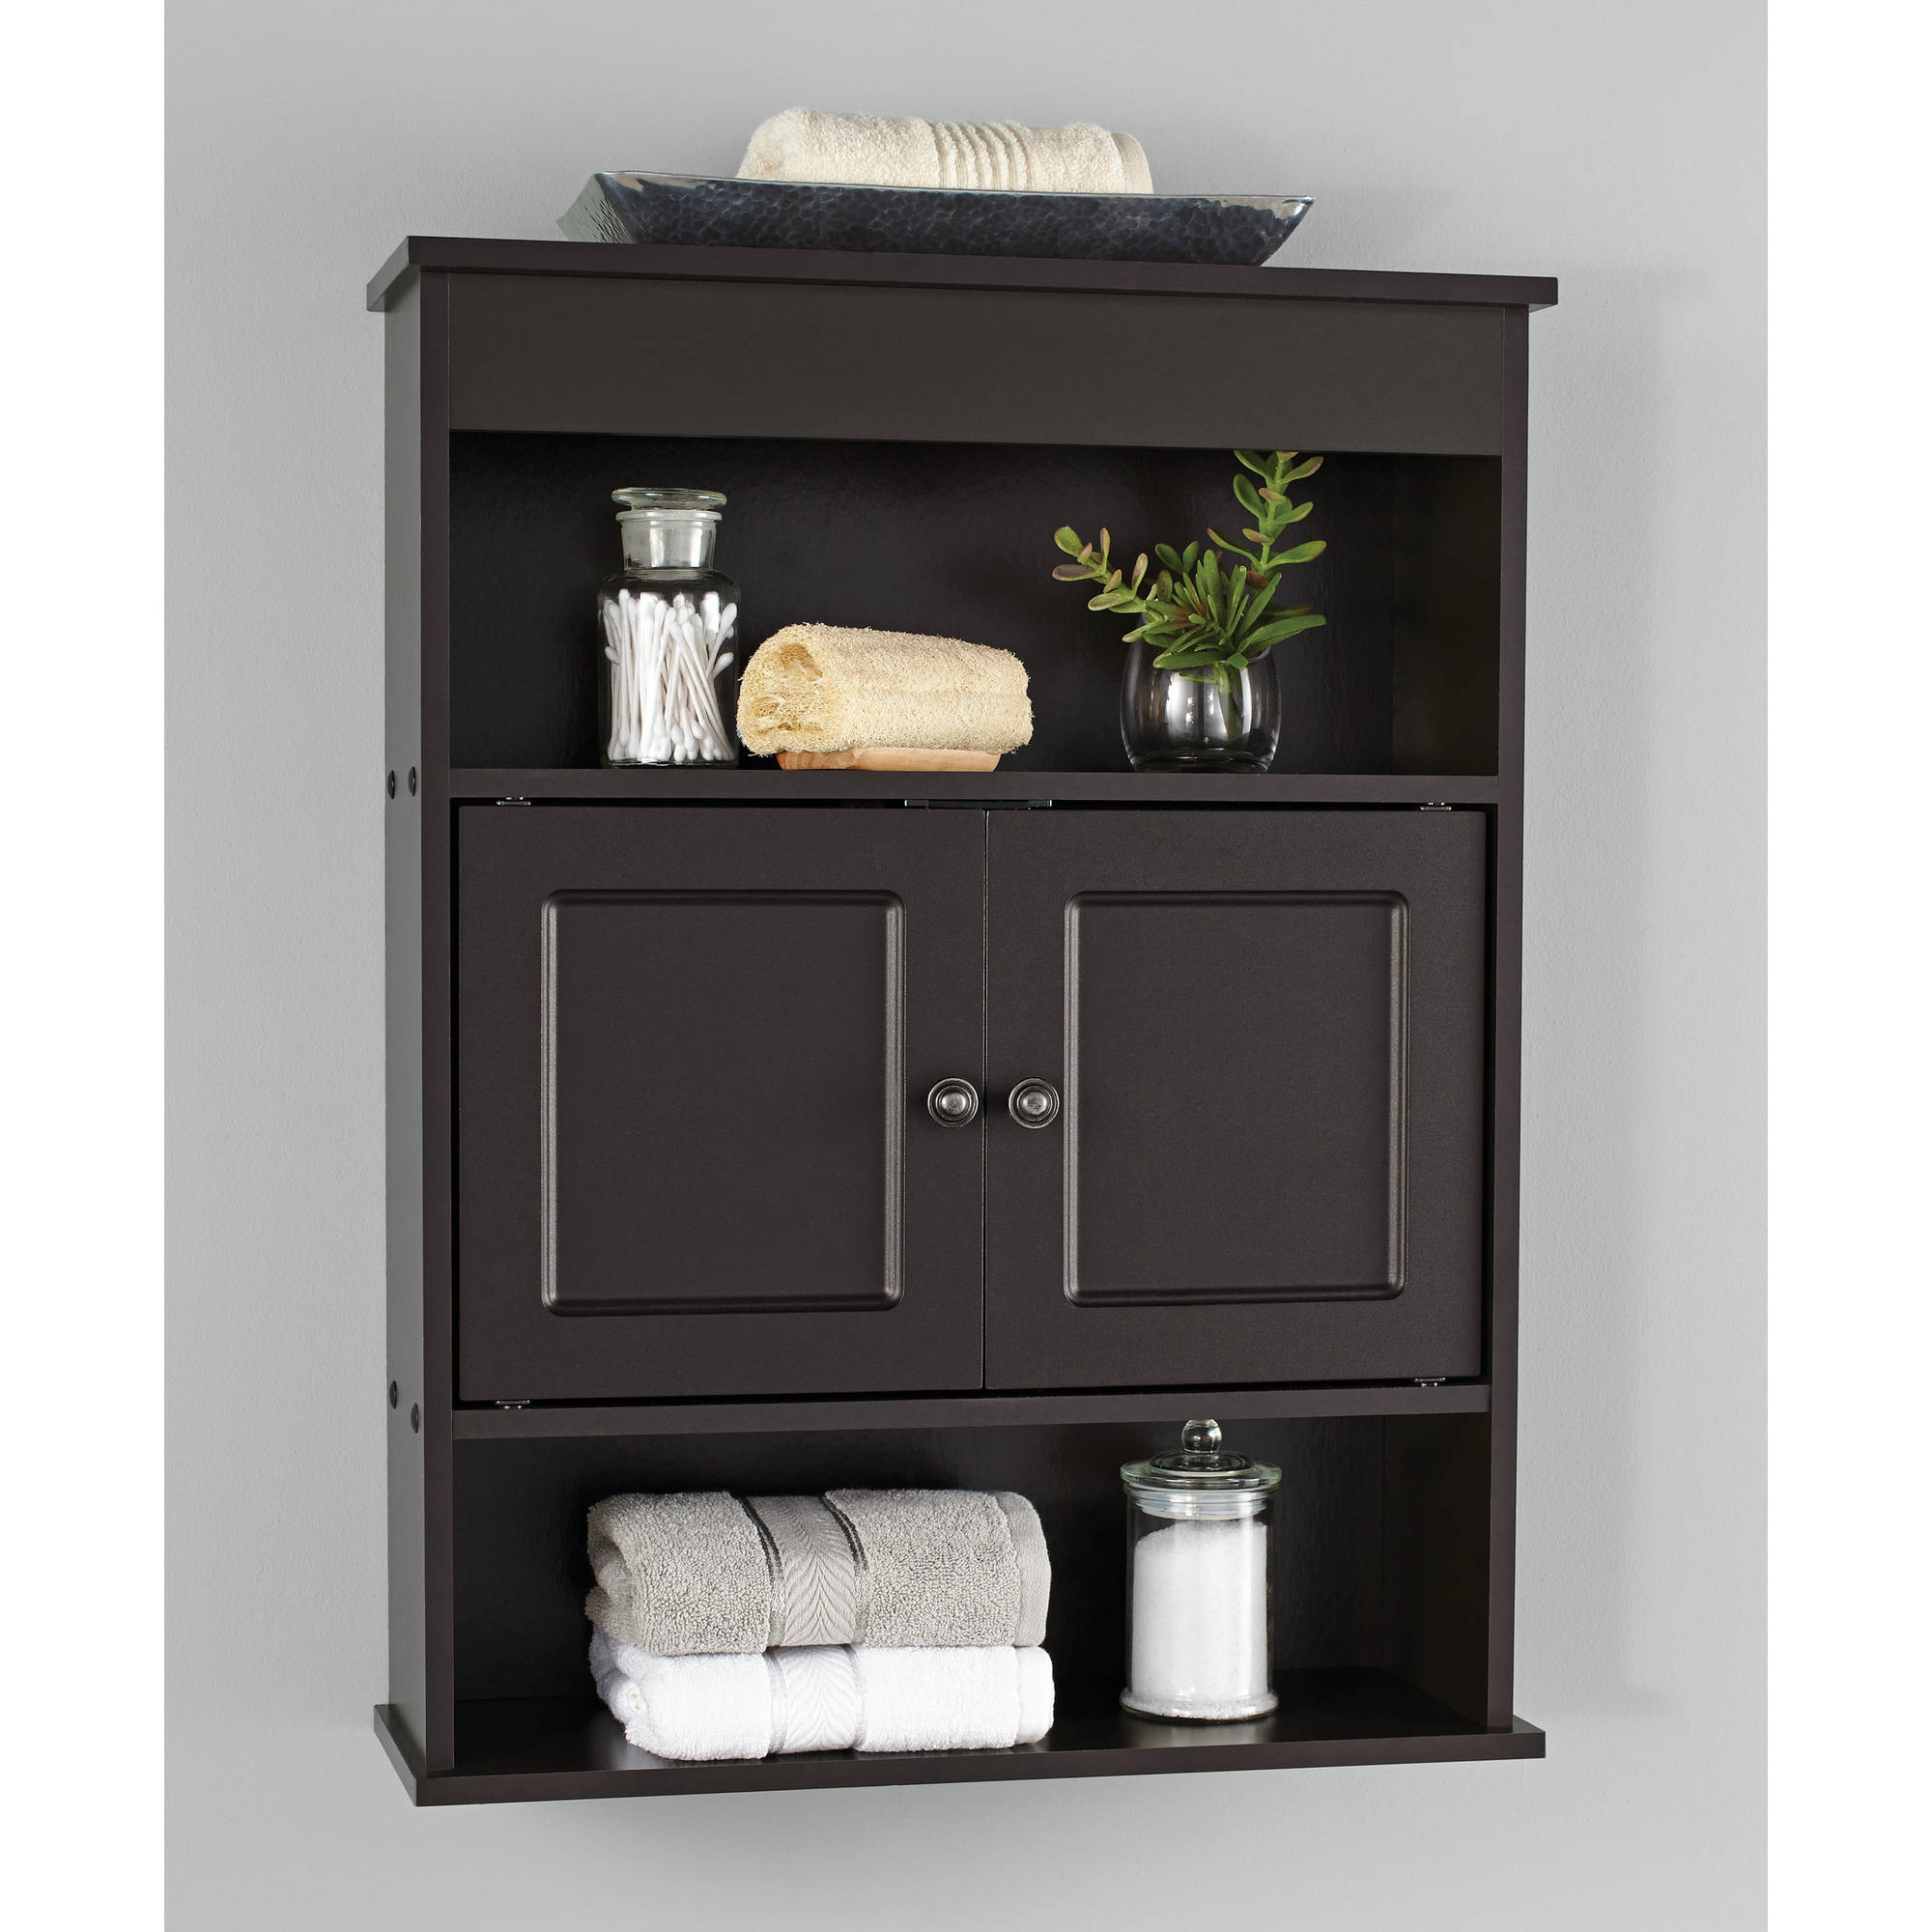 Bathroom Wall Cabinets chapter bathroom wall cabinet, espresso - walmart